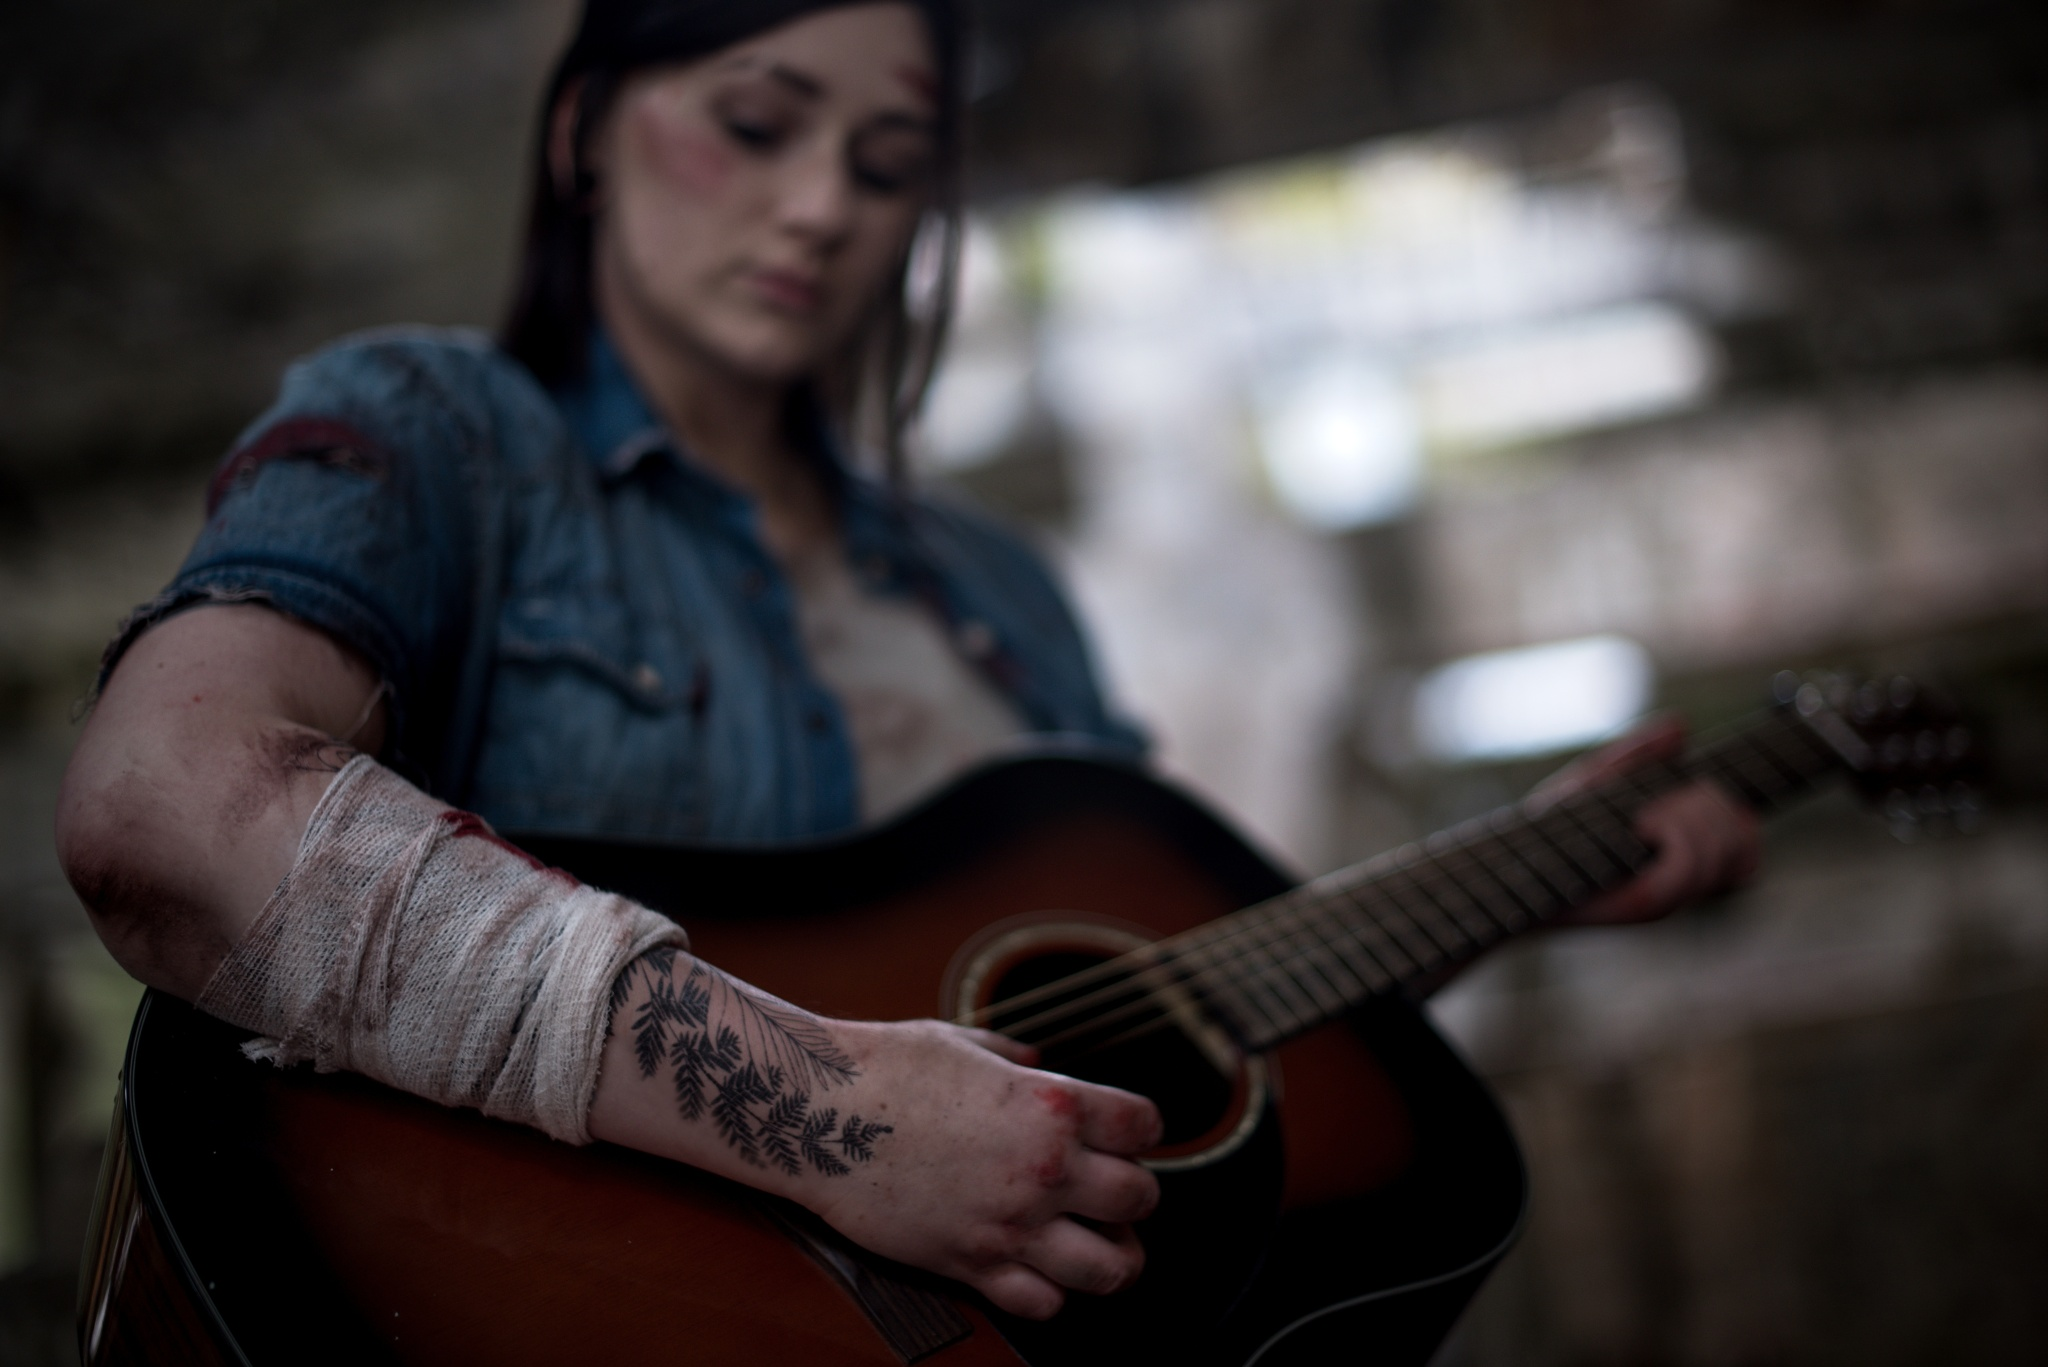 How to Photograph a Cosplay - Ellie cosplay, tattoo and guitar